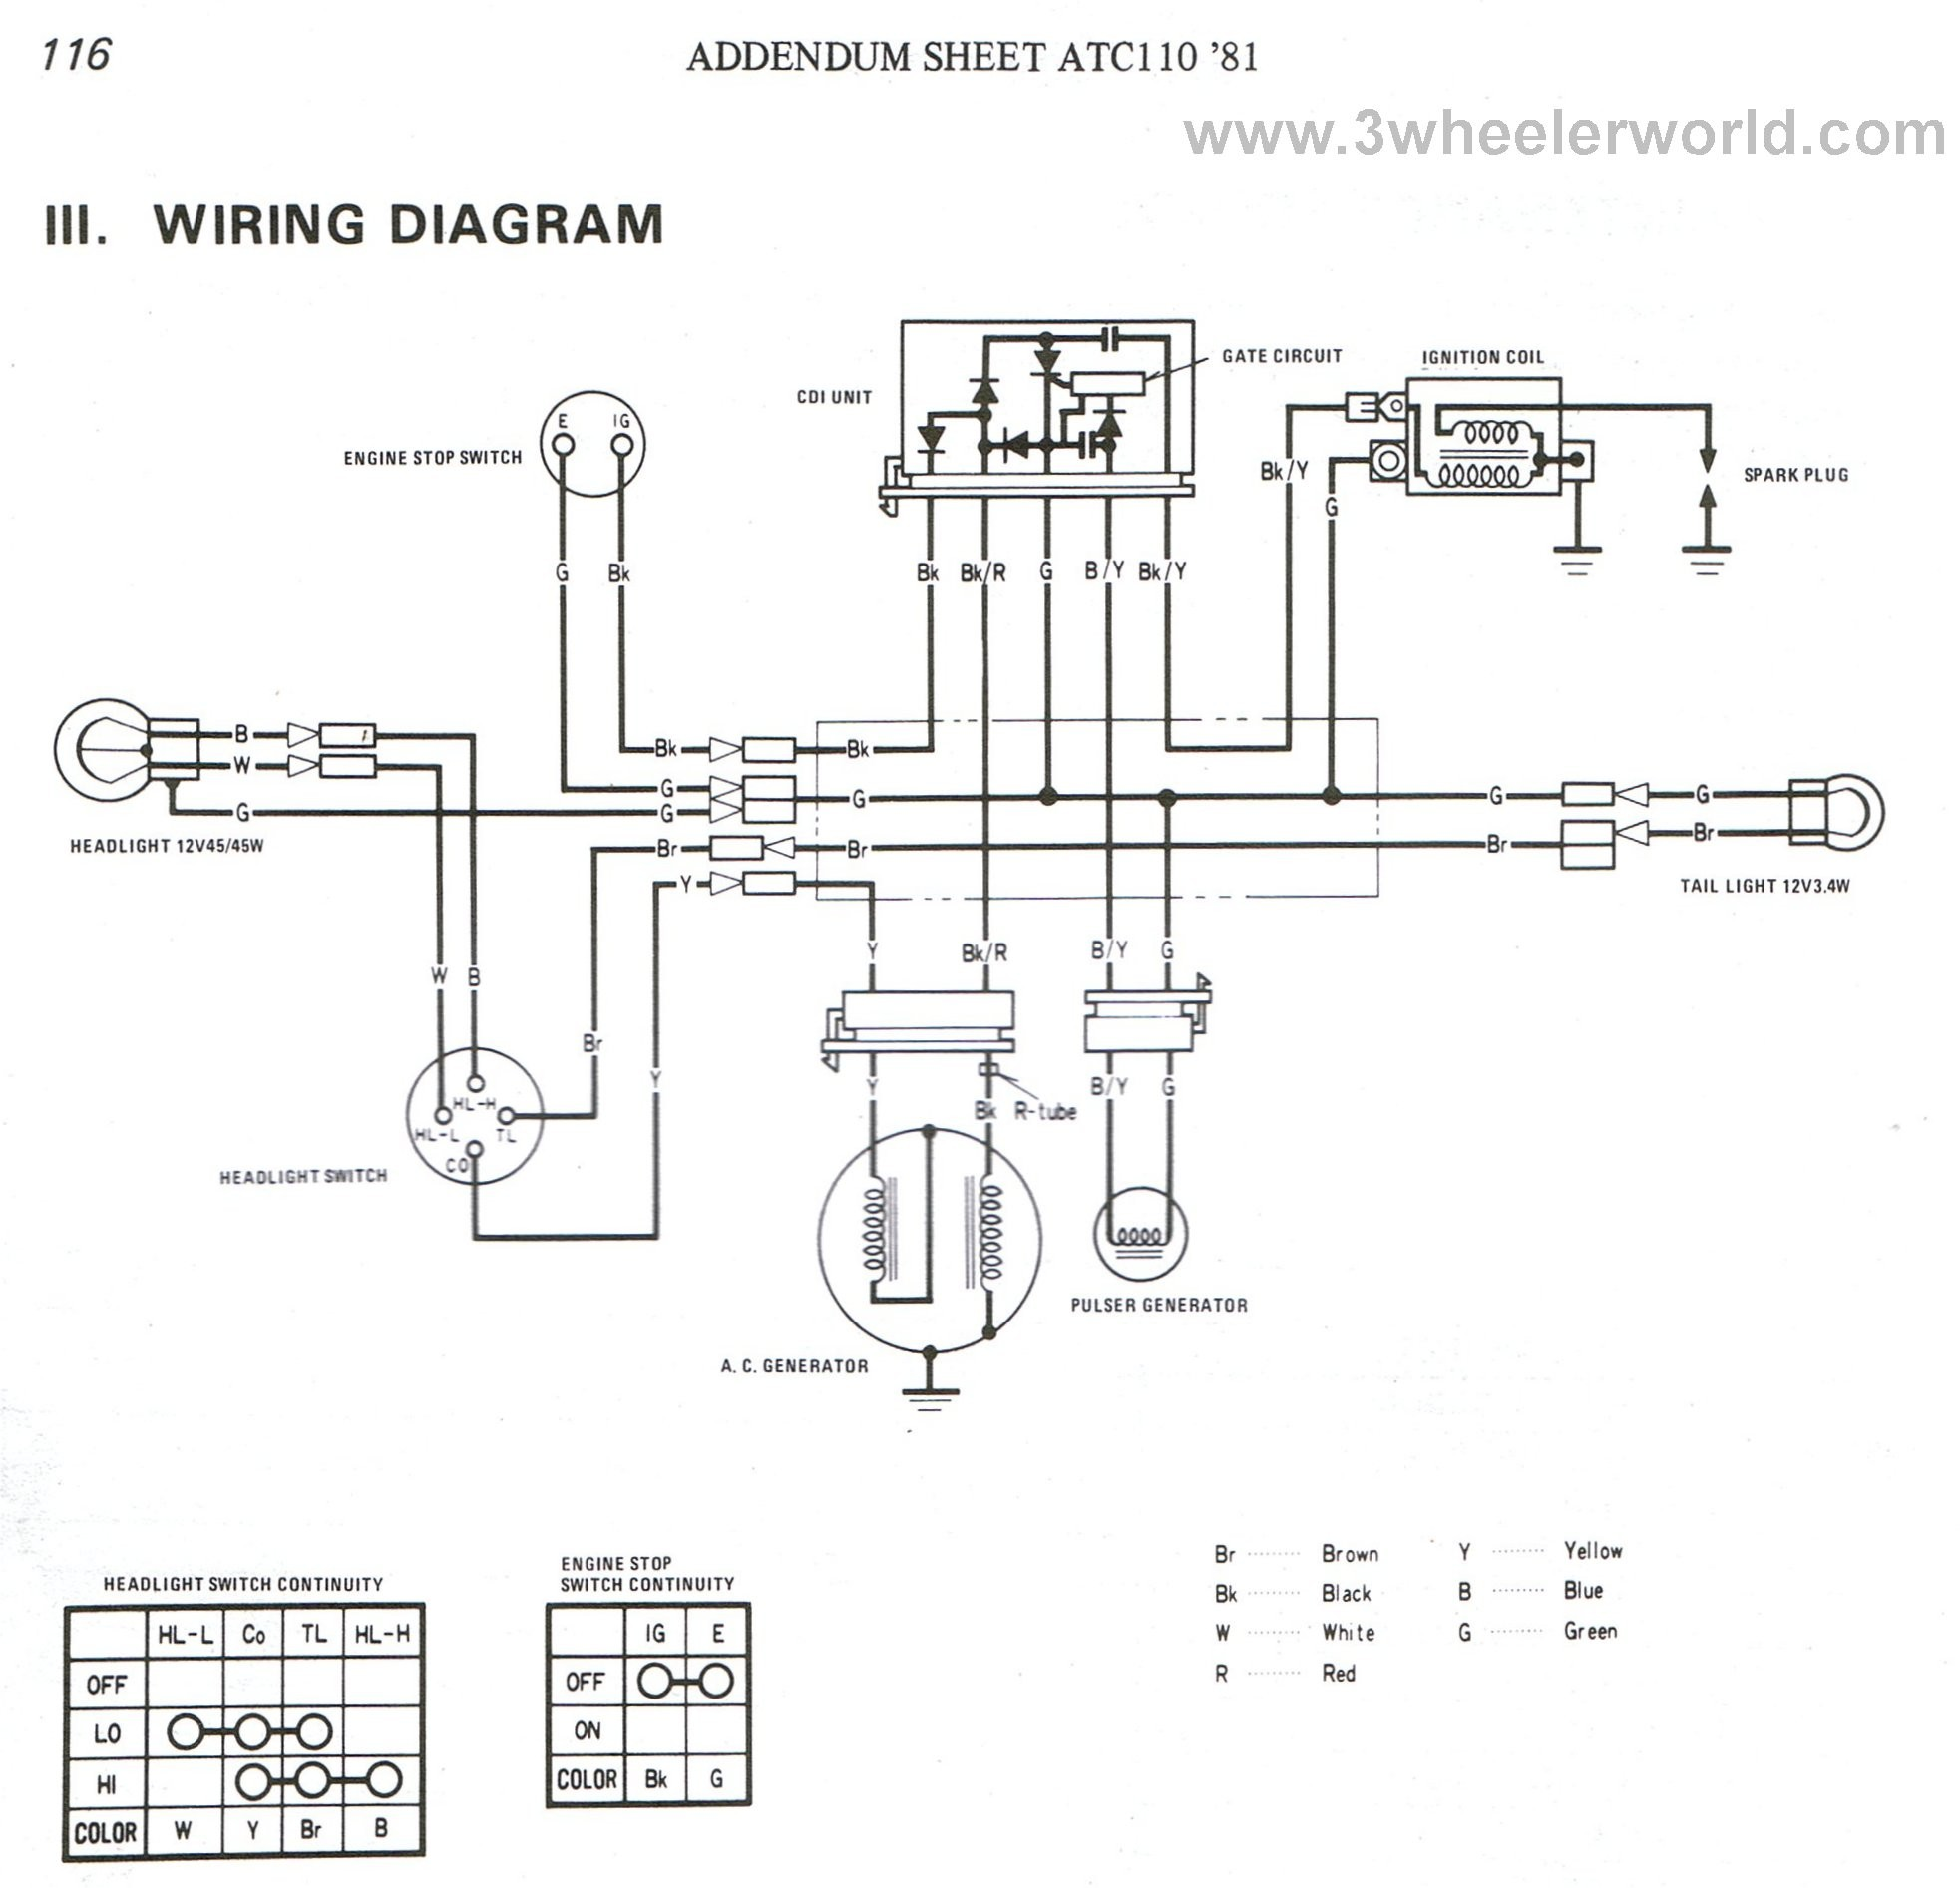 Honda Atv Wiring Diagram With Schematic Wenkm Incredible For Tao 125